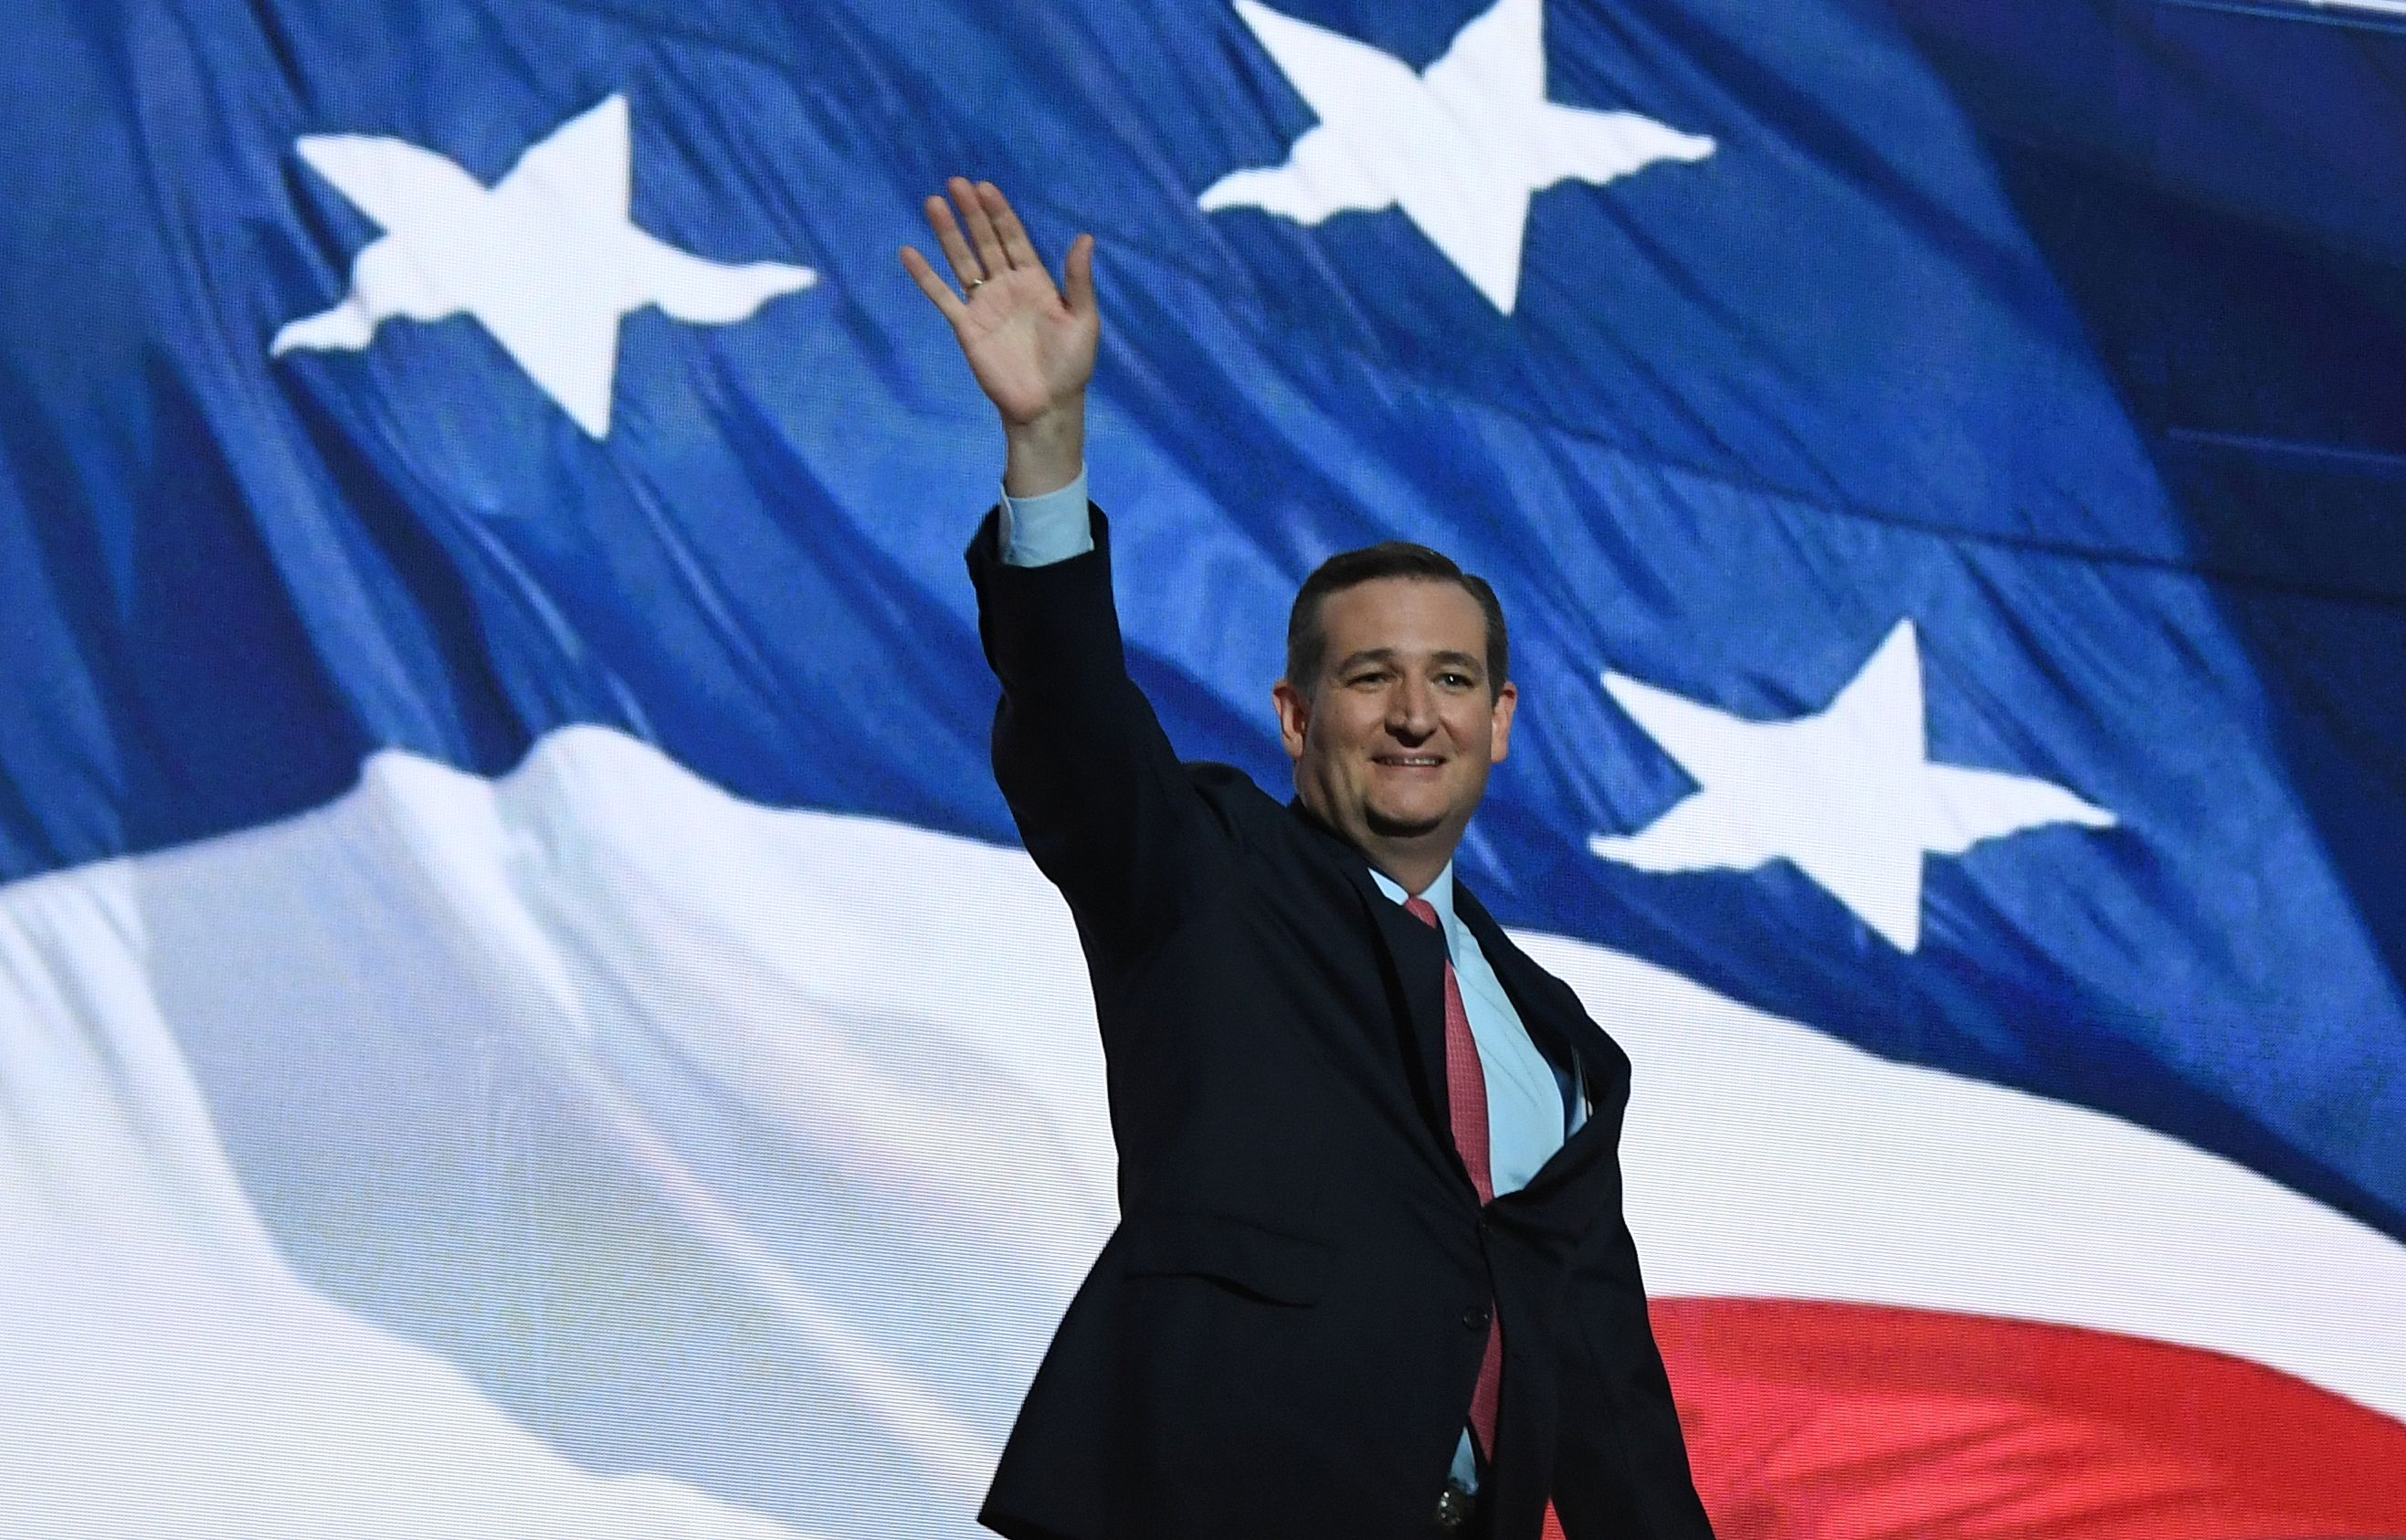 Ted Cruz takes the stage at the 2016 Republican National Convention.